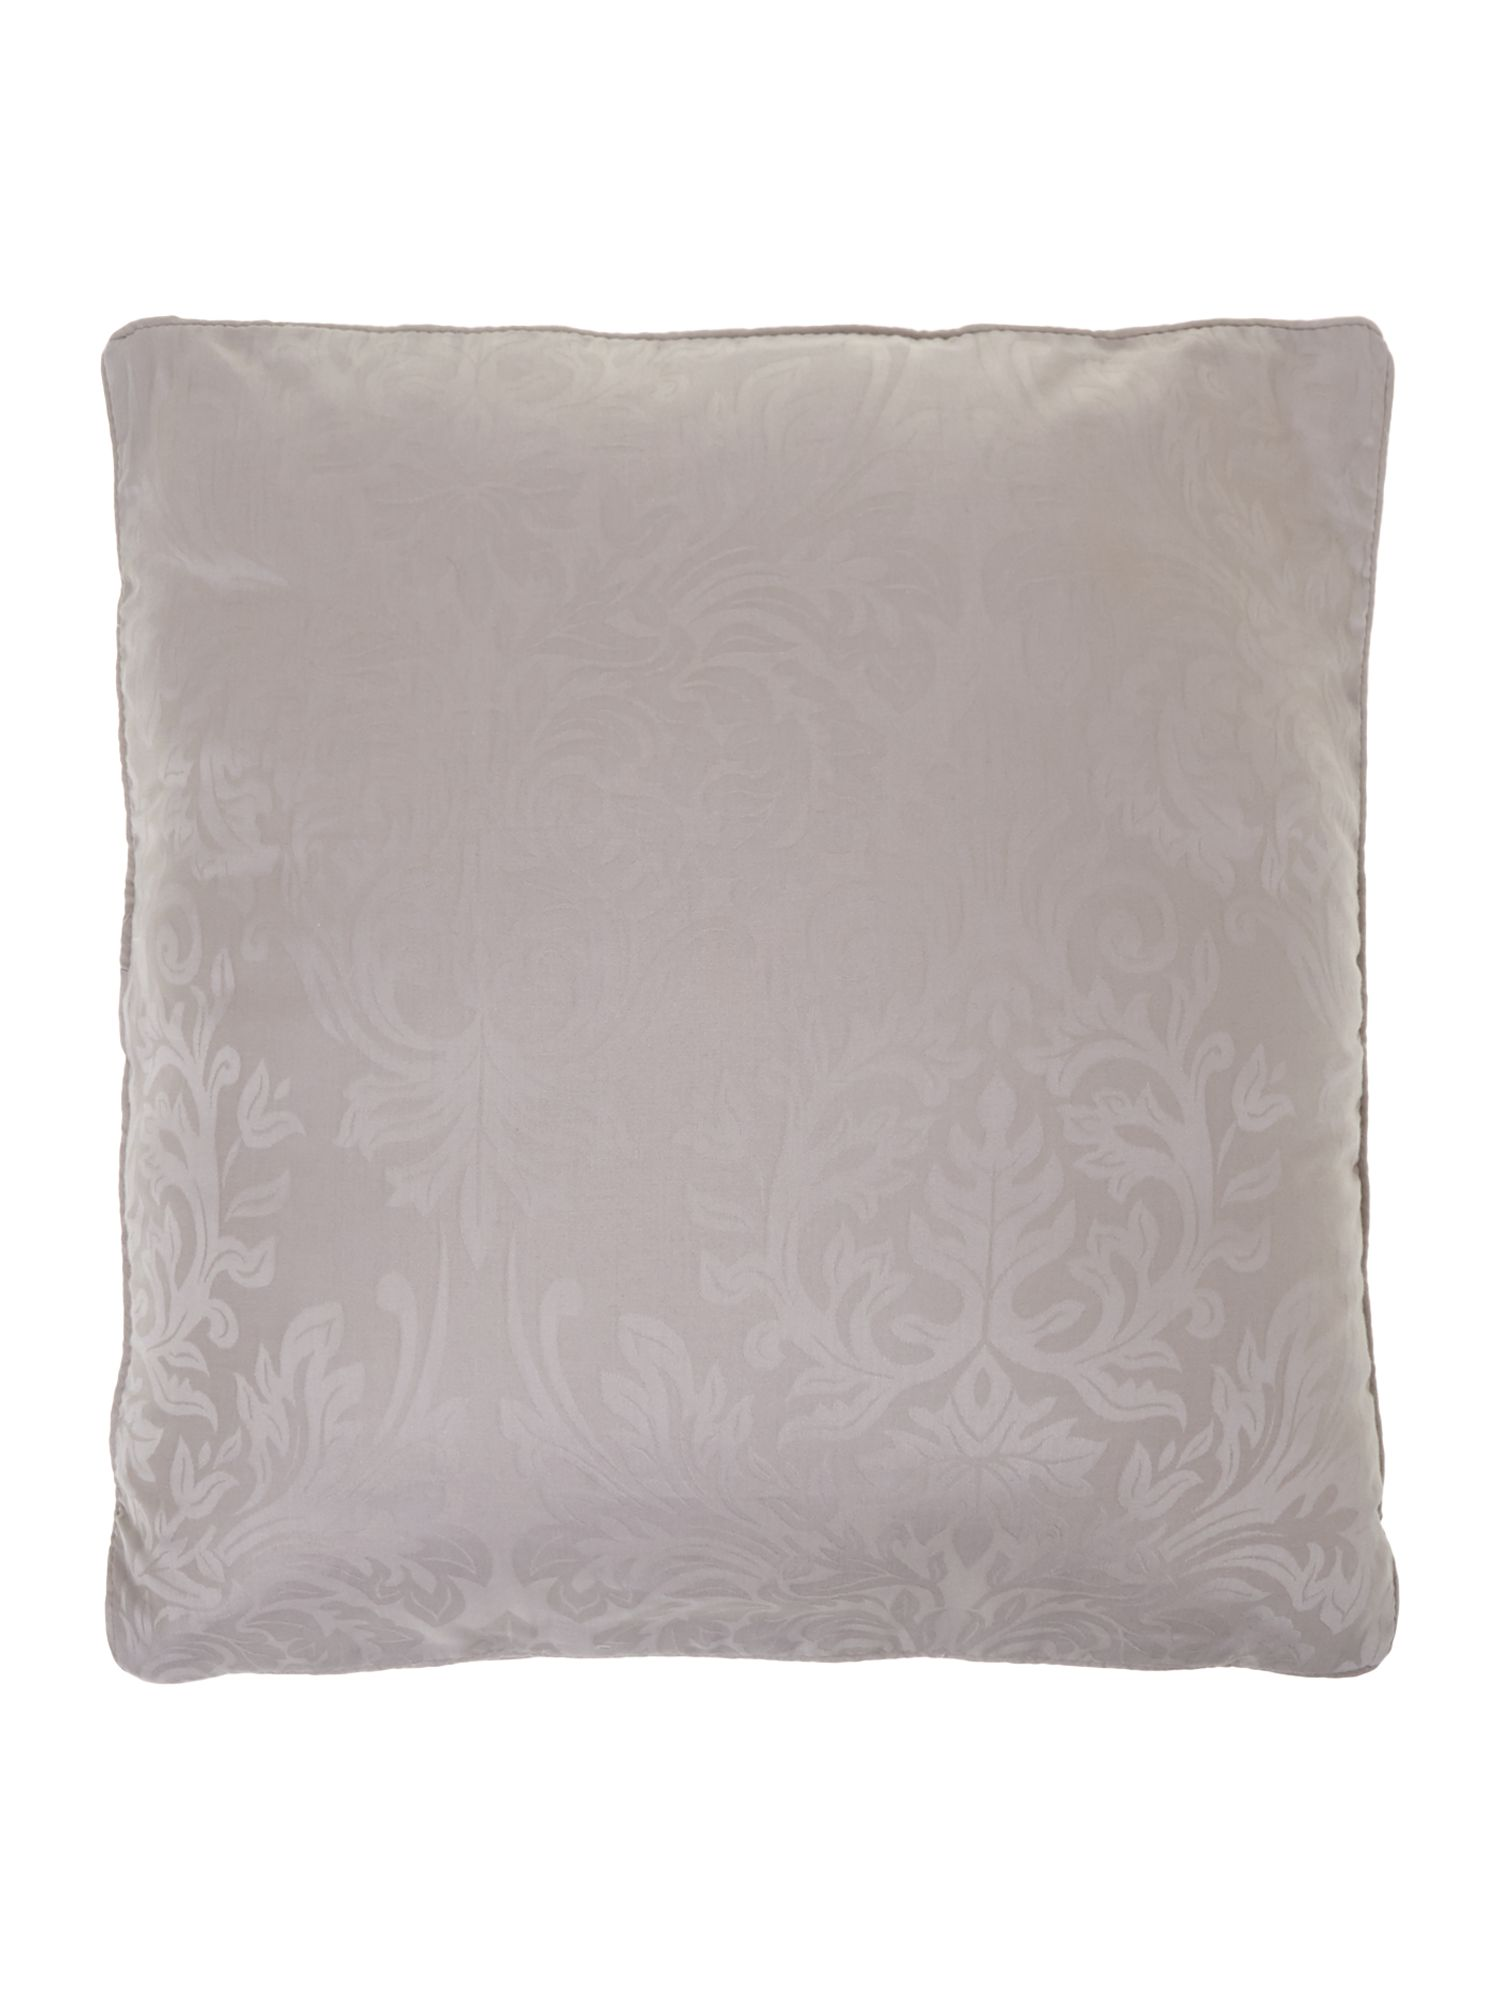 Lhc damask pair of filled cushions taupe